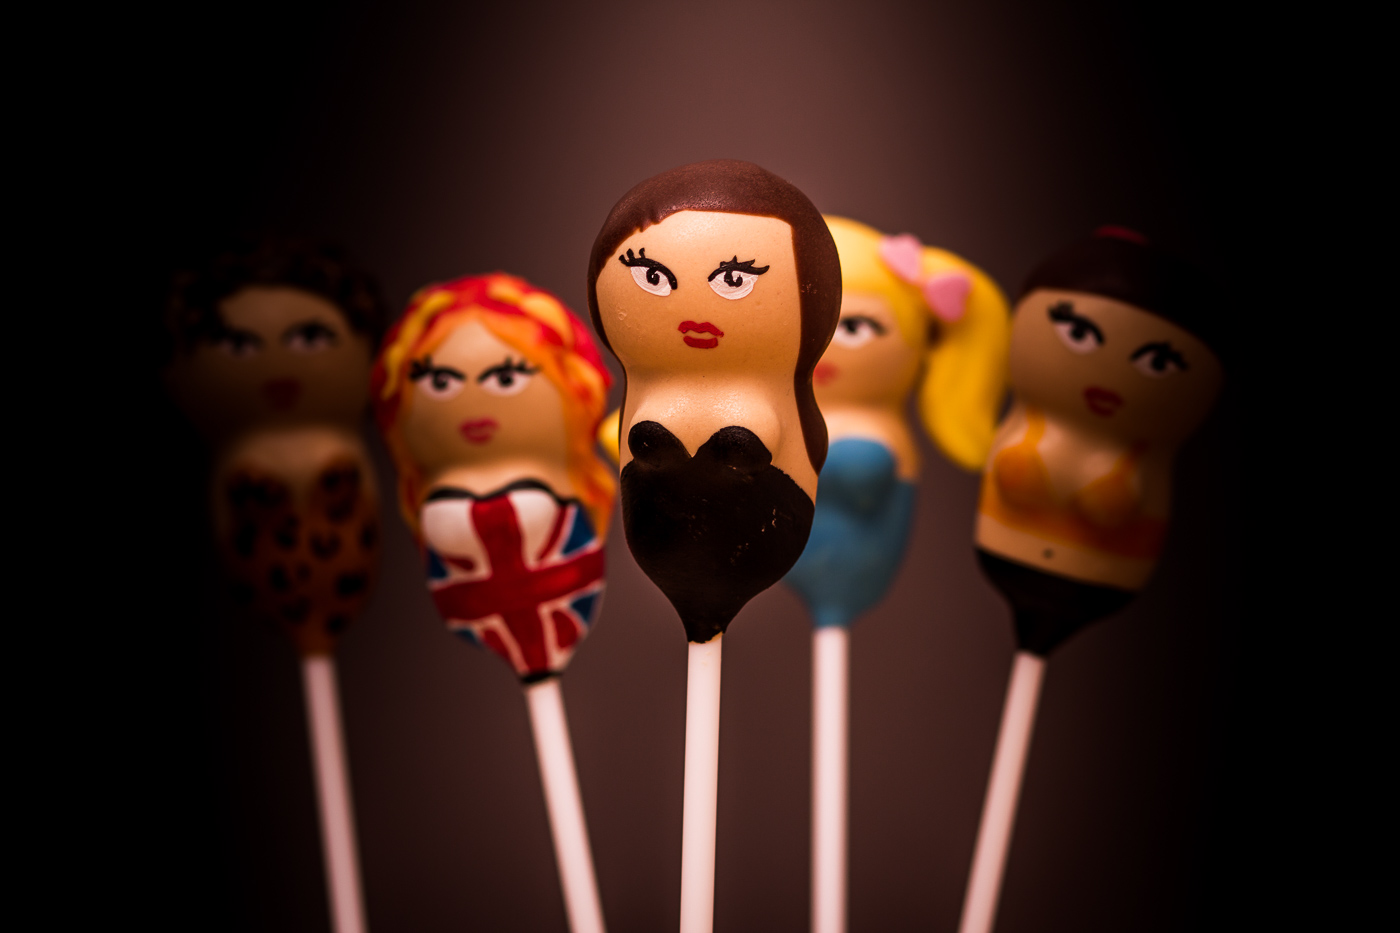 Posh Spice cake pop